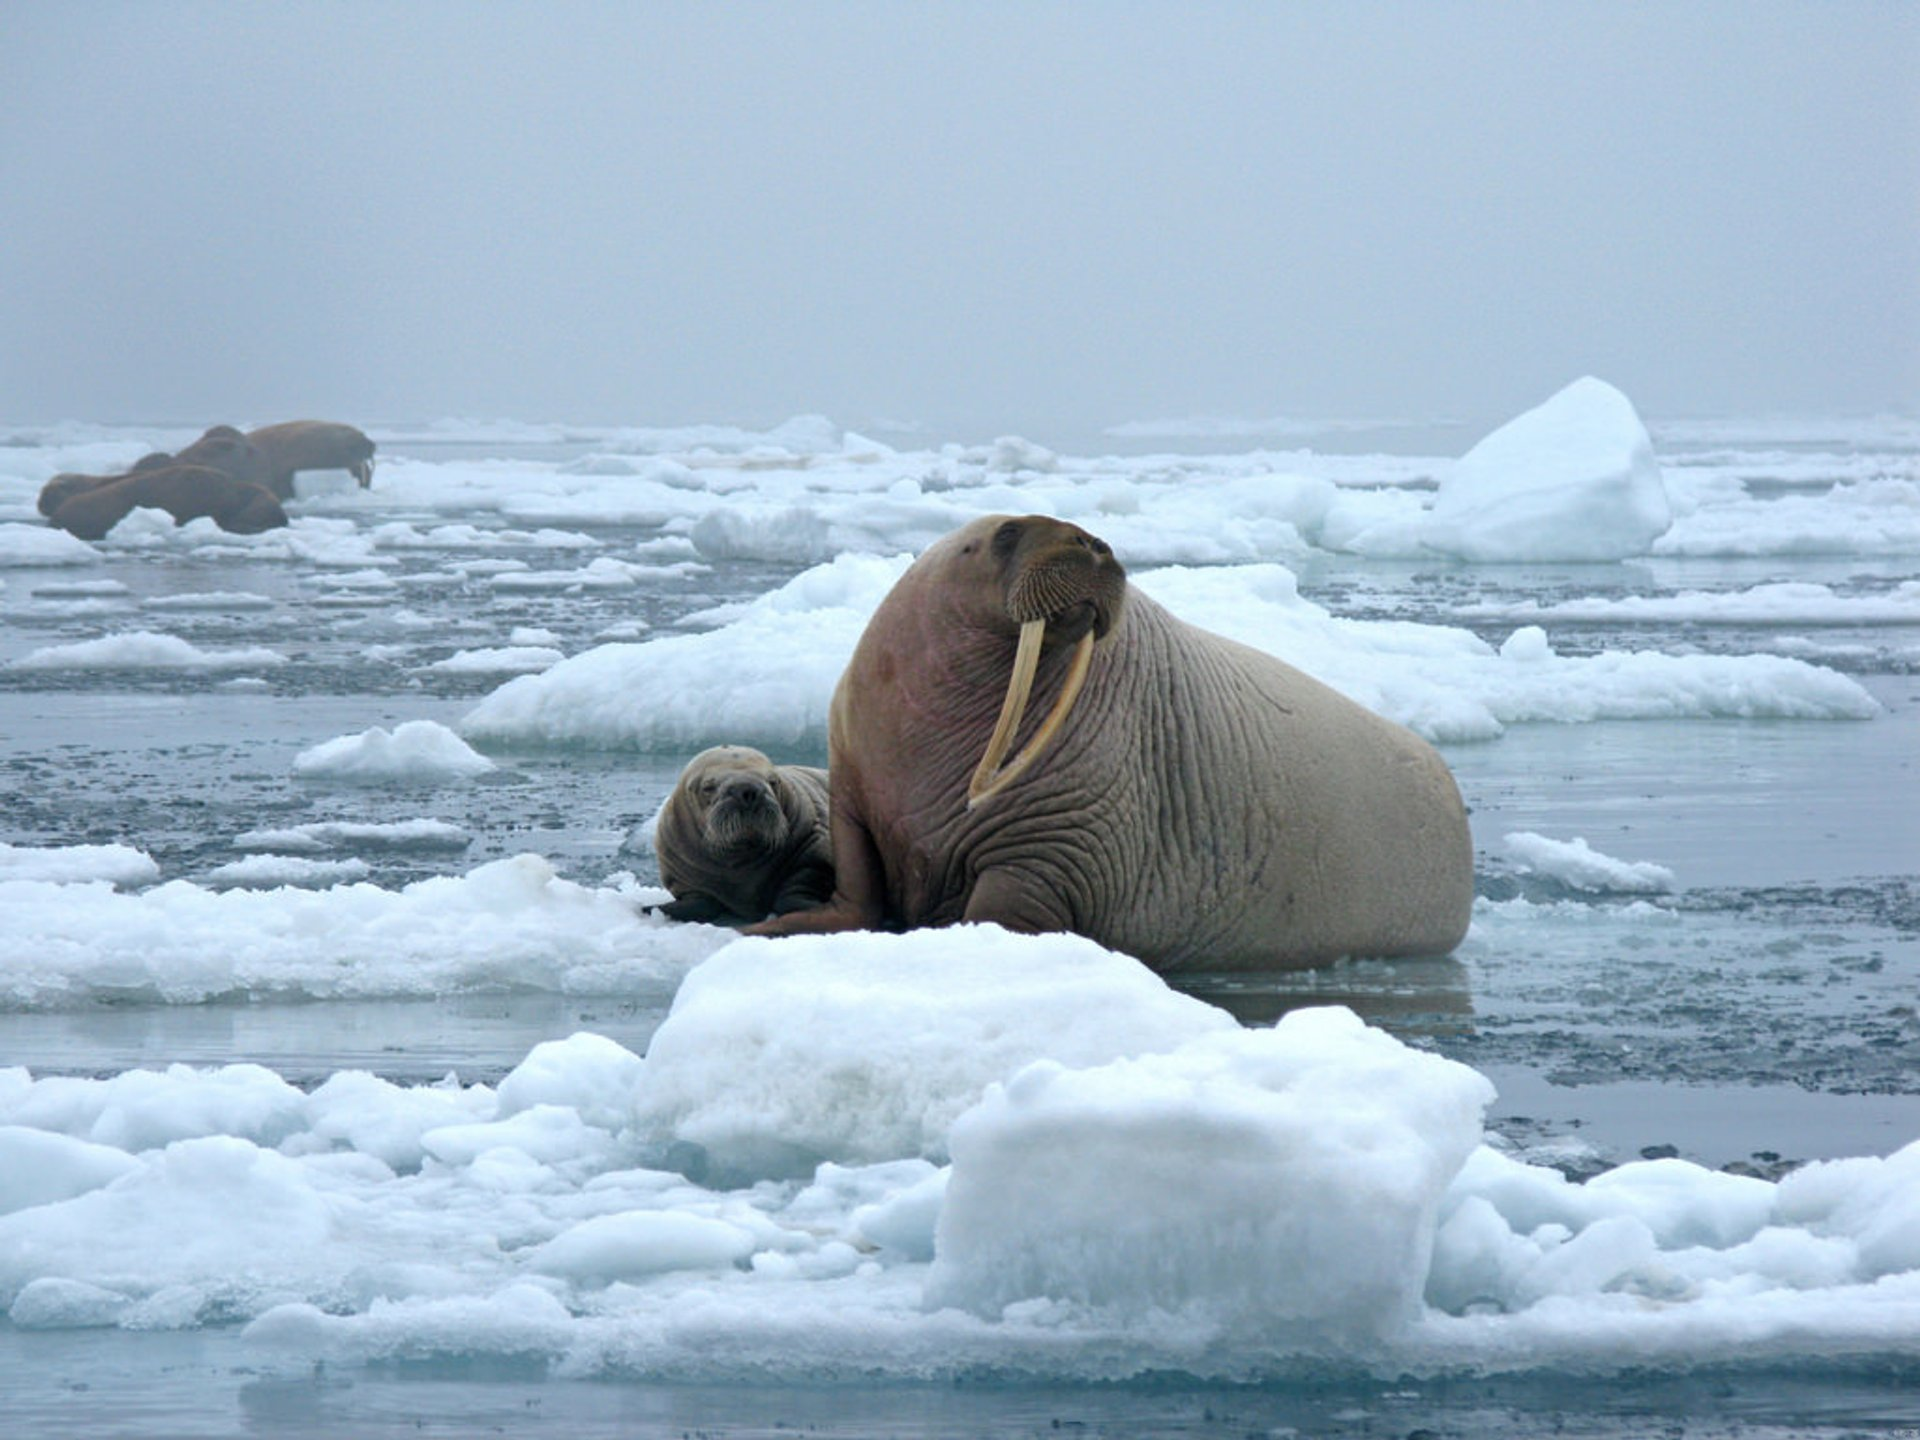 Walrus Watching in Alaska 2020 - Best Time